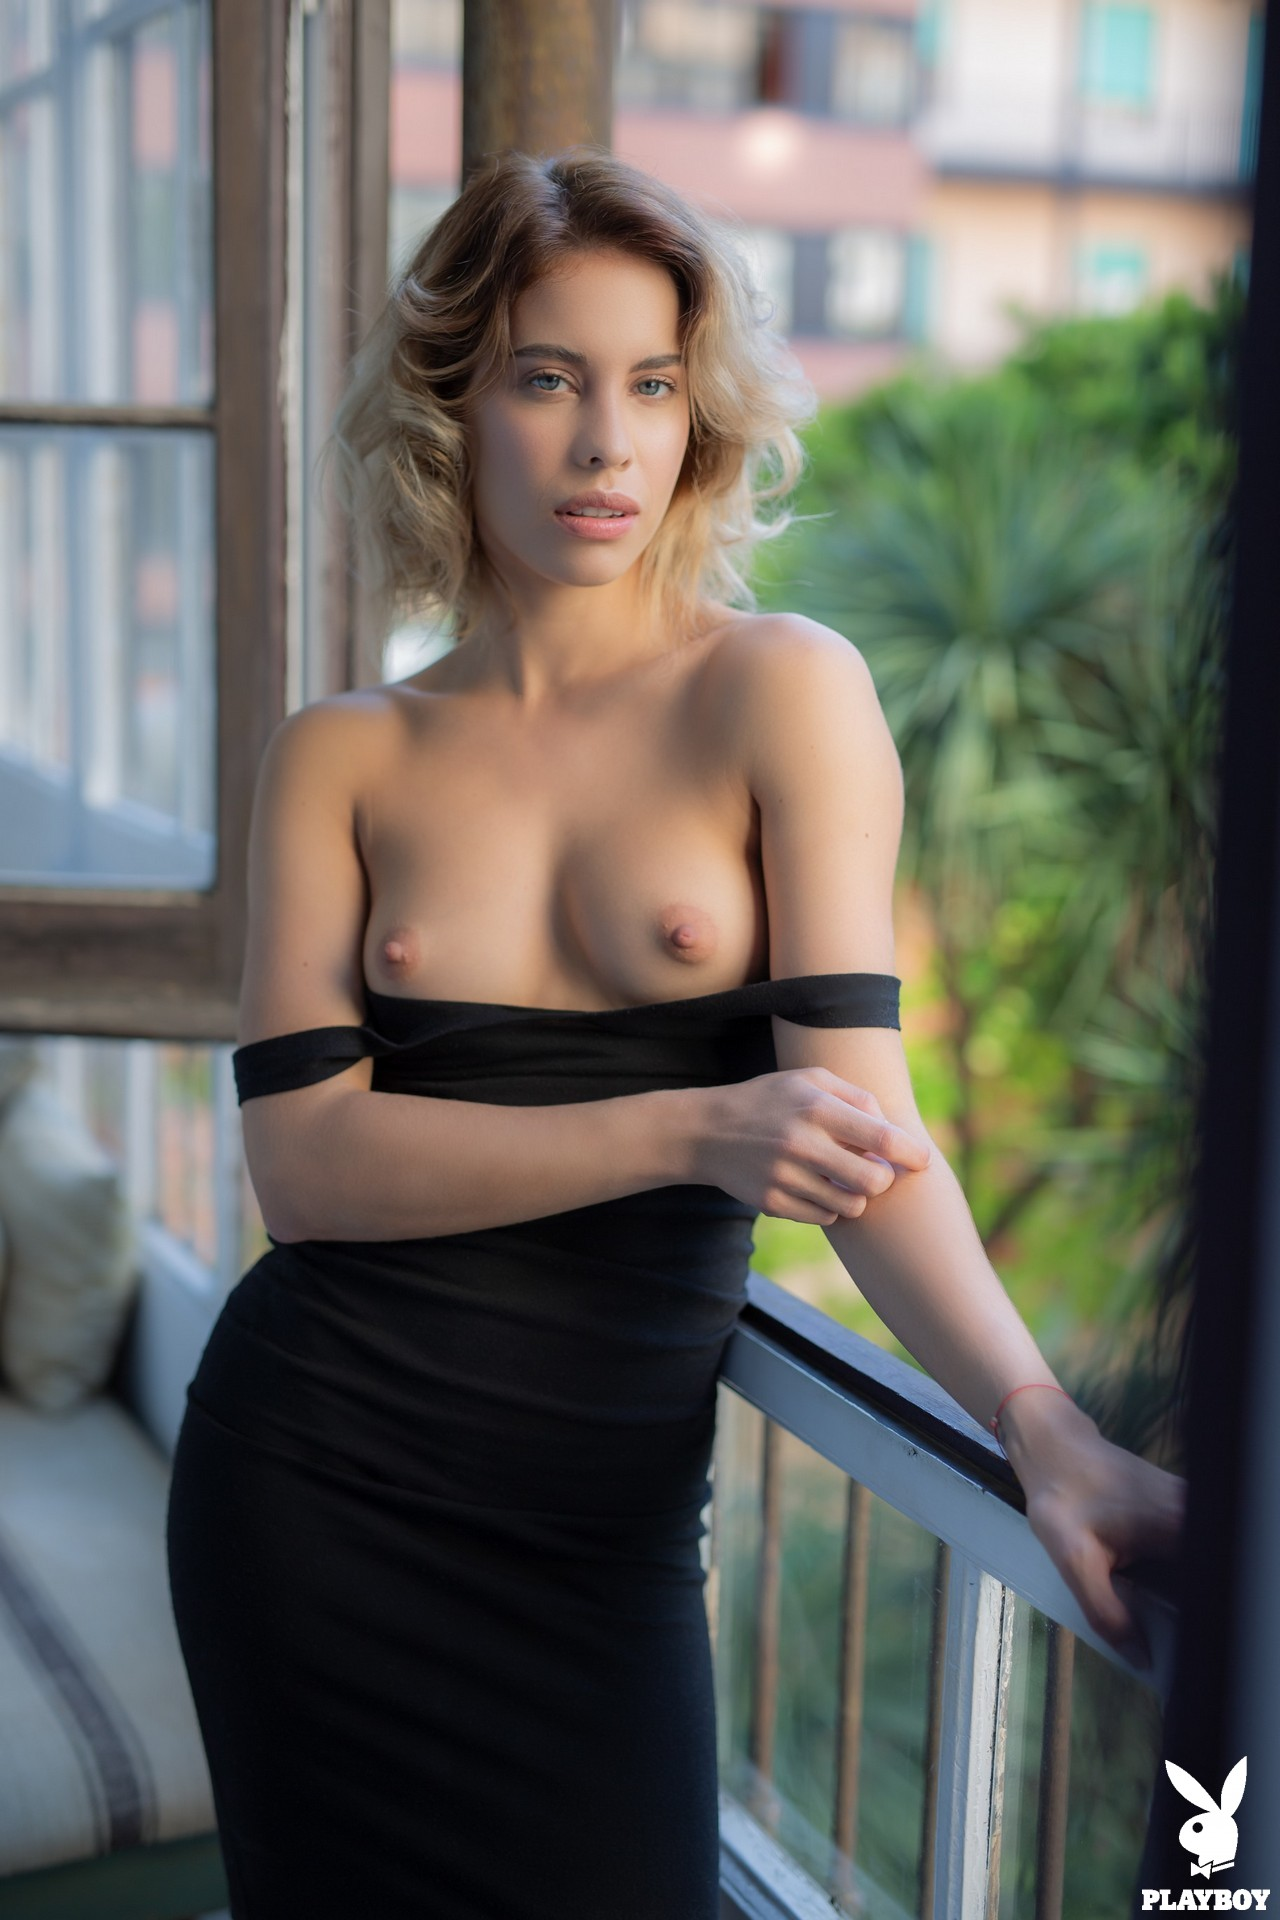 Toni Maria in Seeing Clearly - Playboy Plus 2